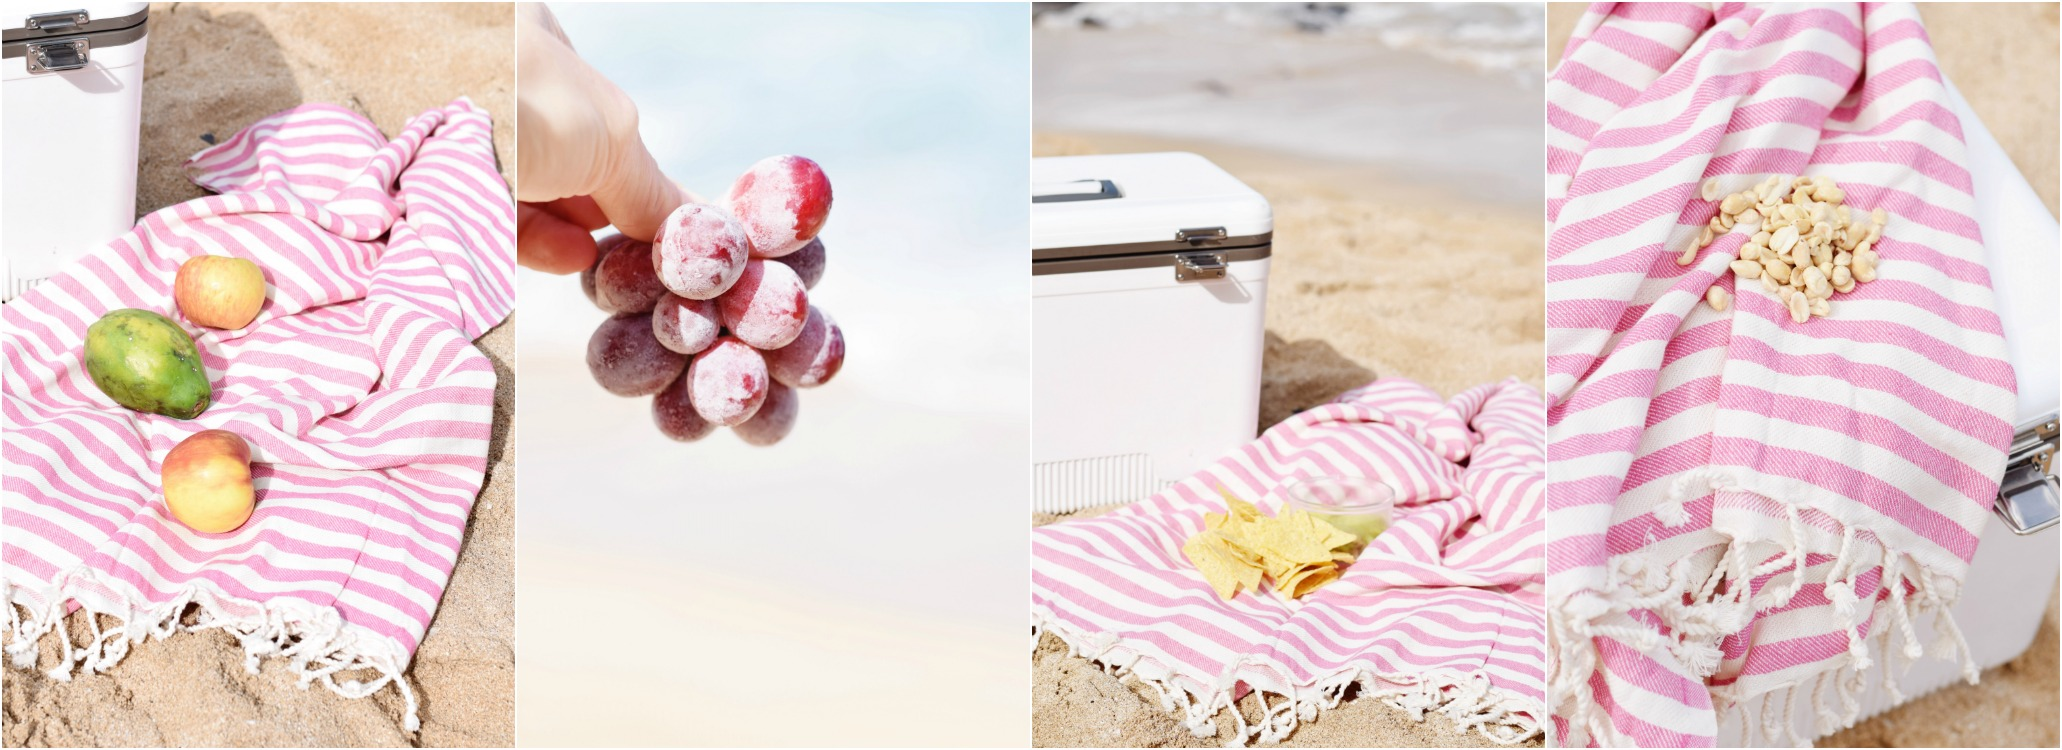 Recipe For The Perfect Beach Day - CommuniKait